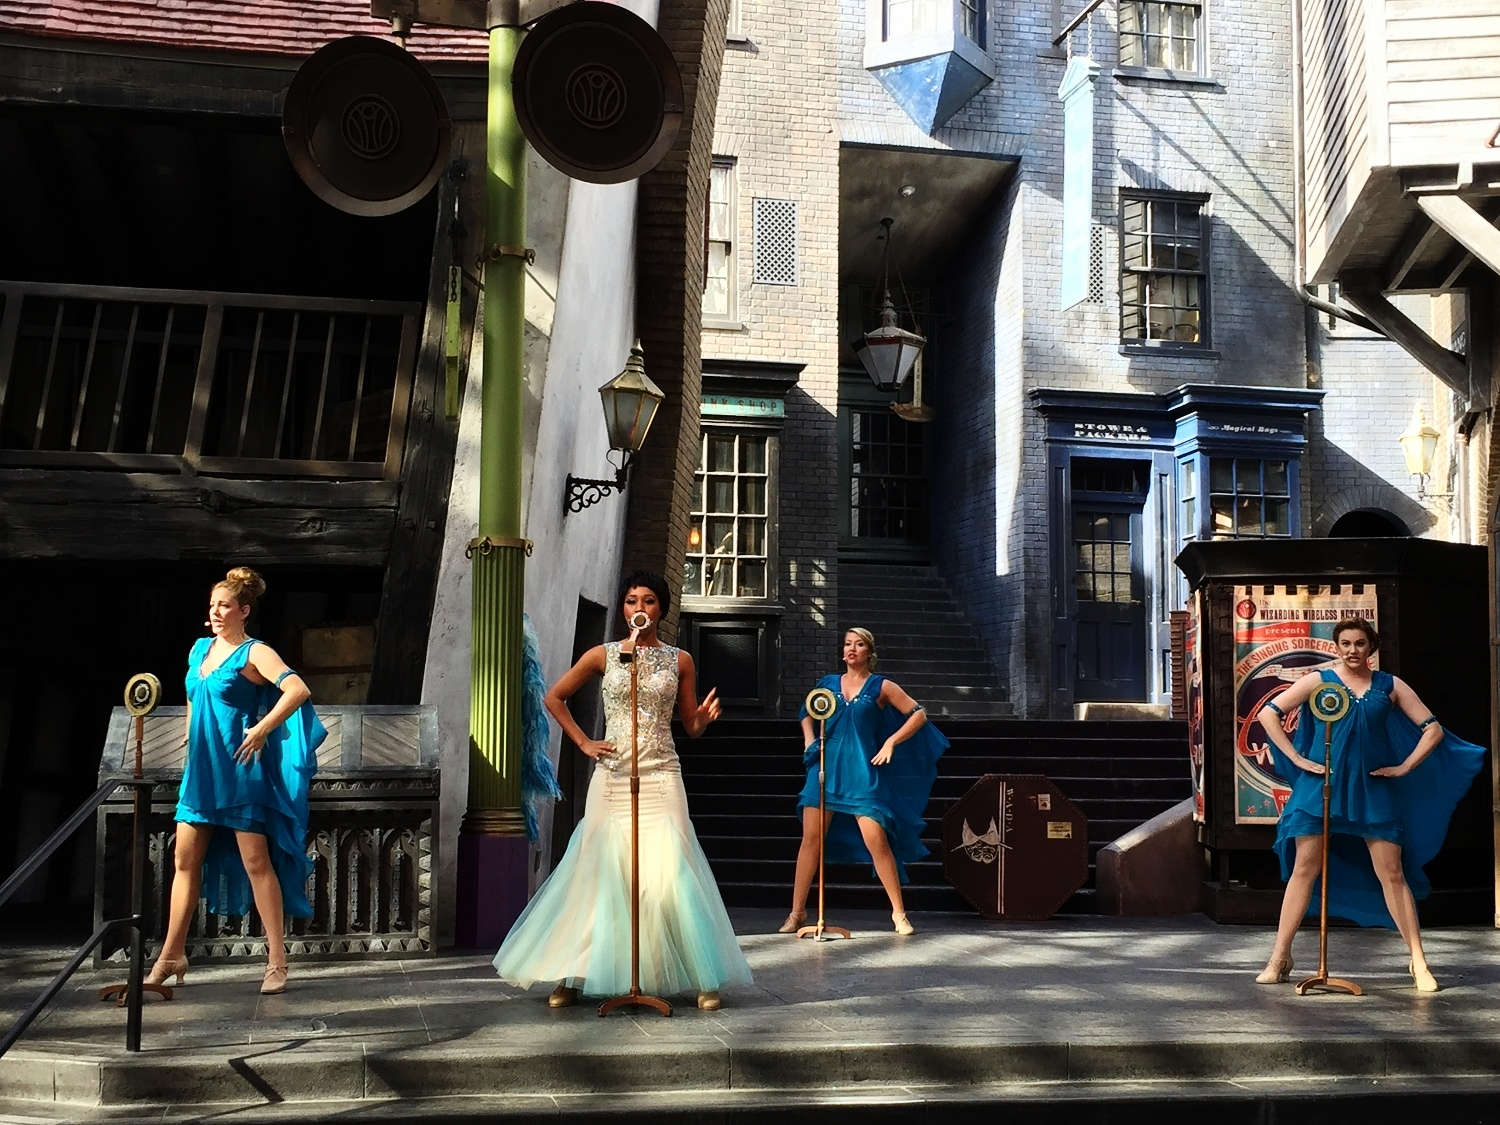 Celestina Warbeck and the Banshees performing on stage in Diagon Alley.